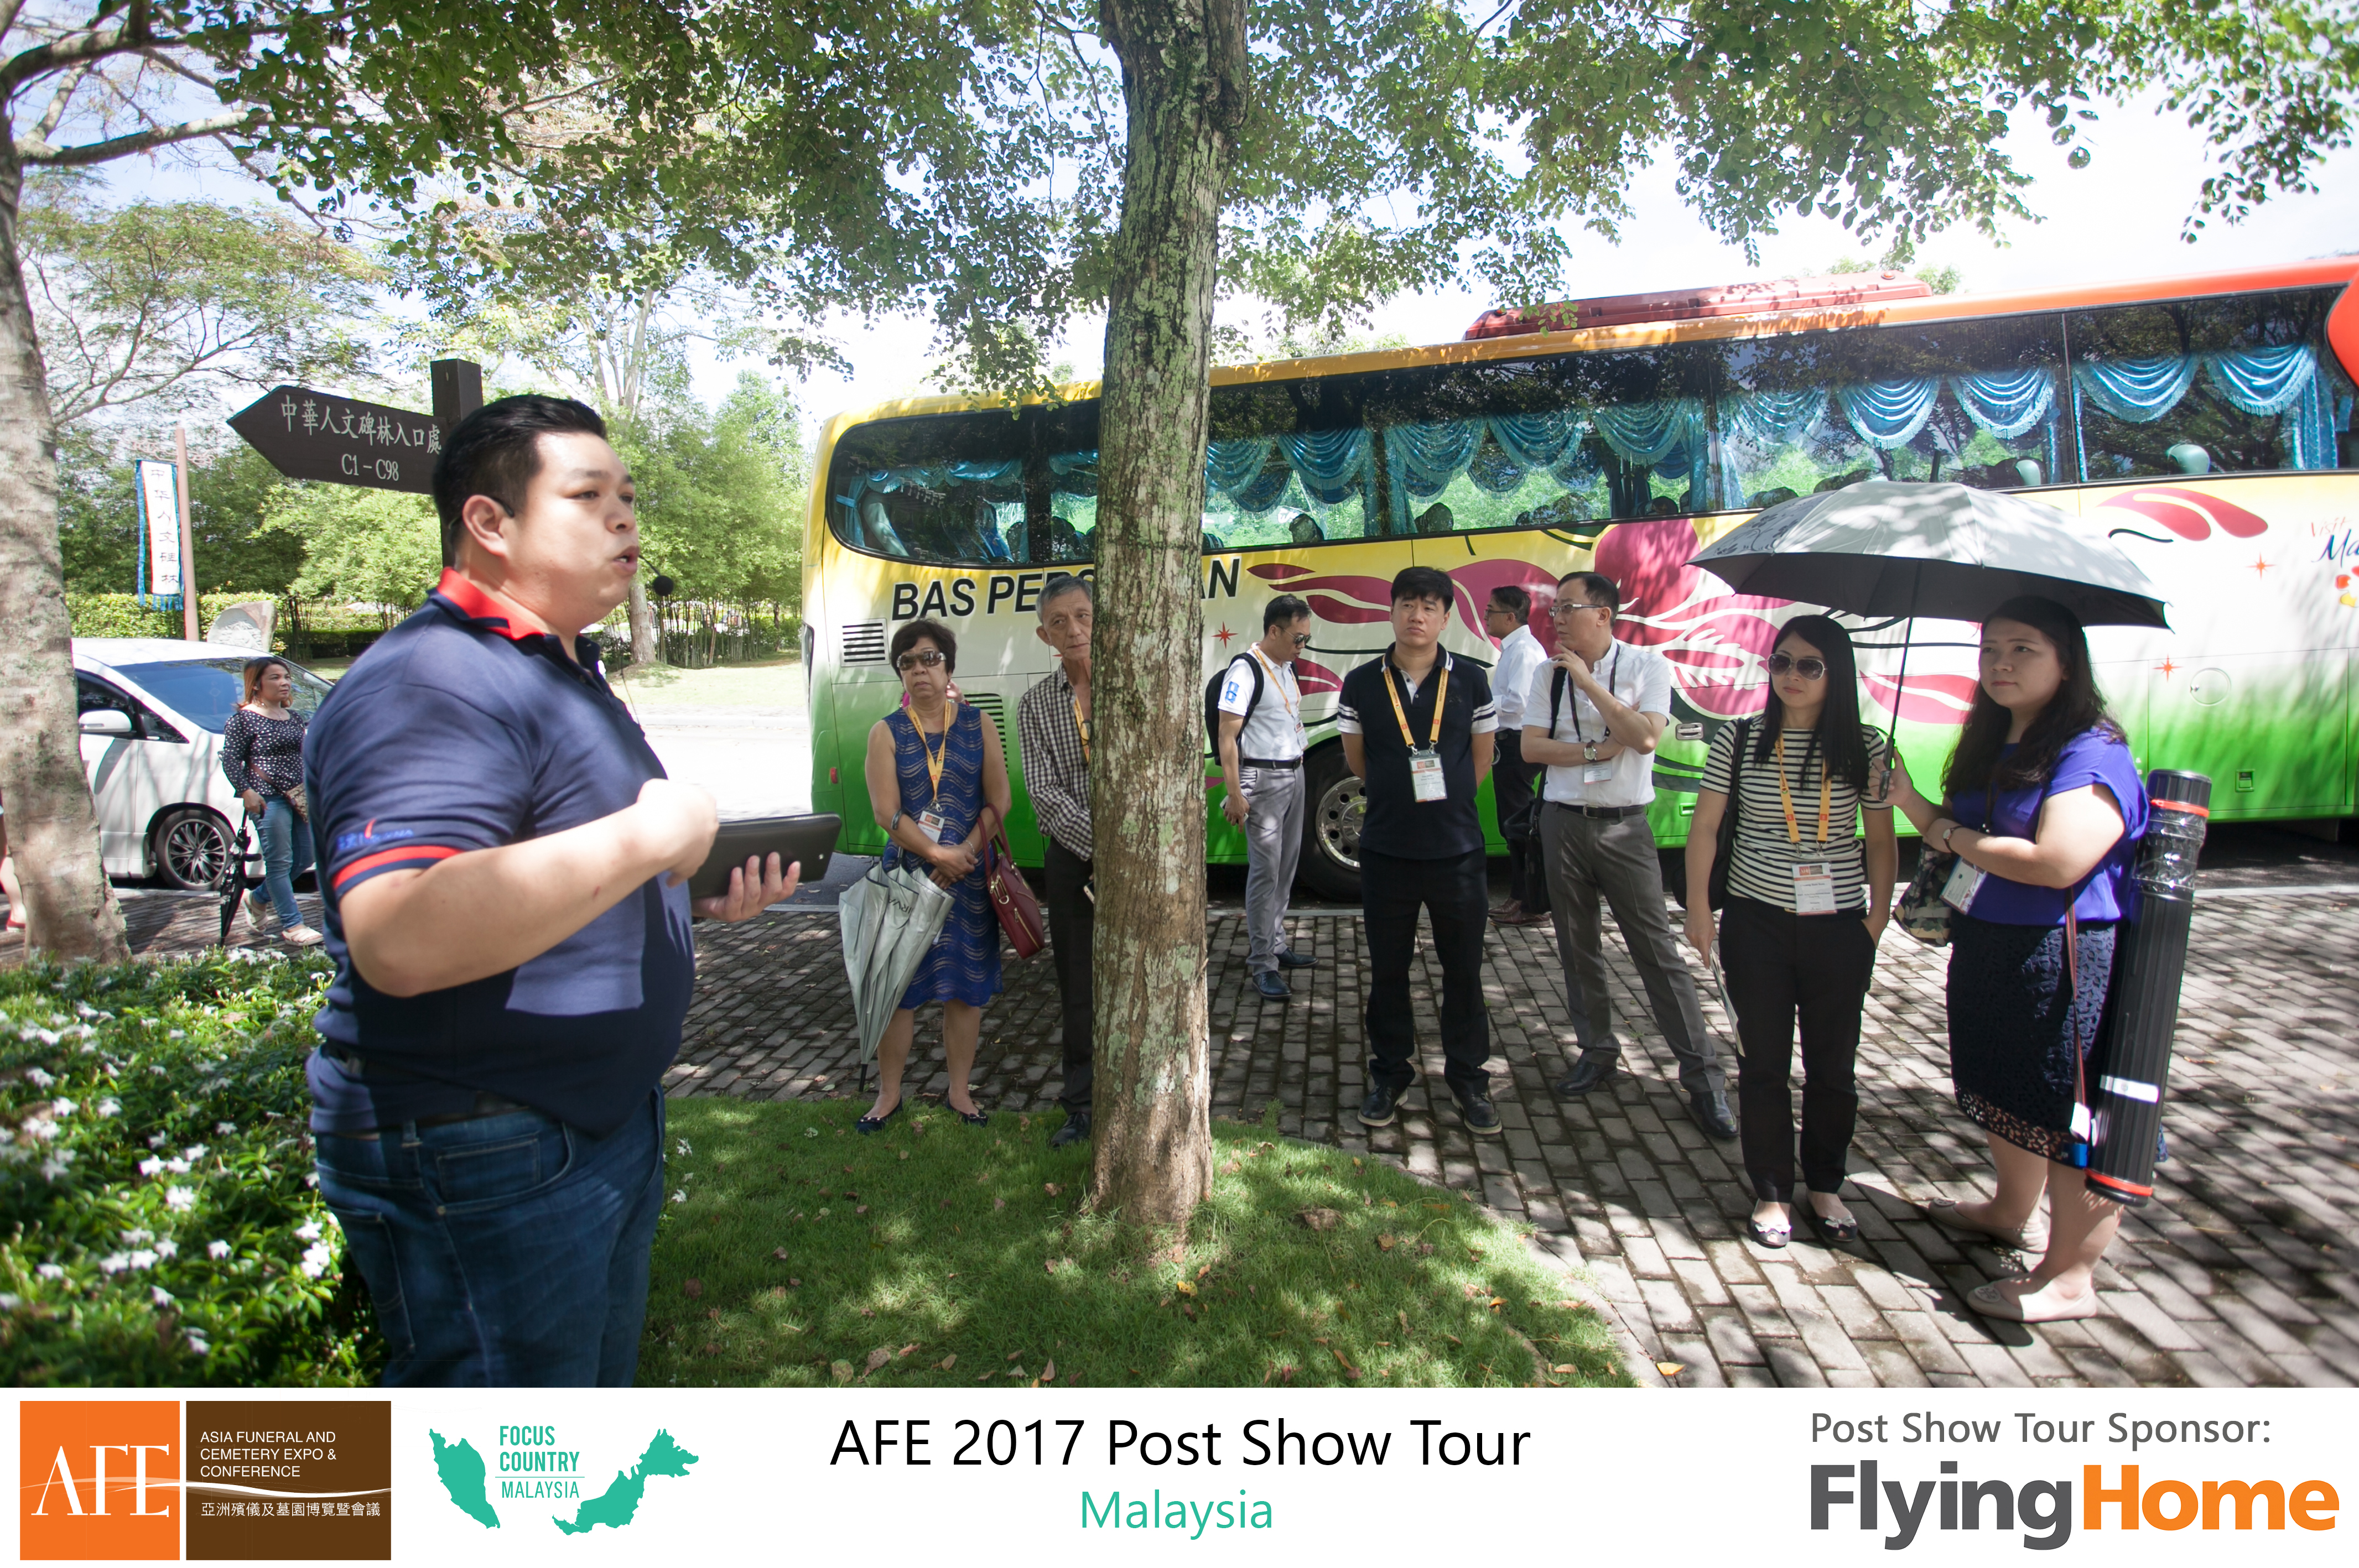 AFE Post Show Tour 2017 Day 2 - 07